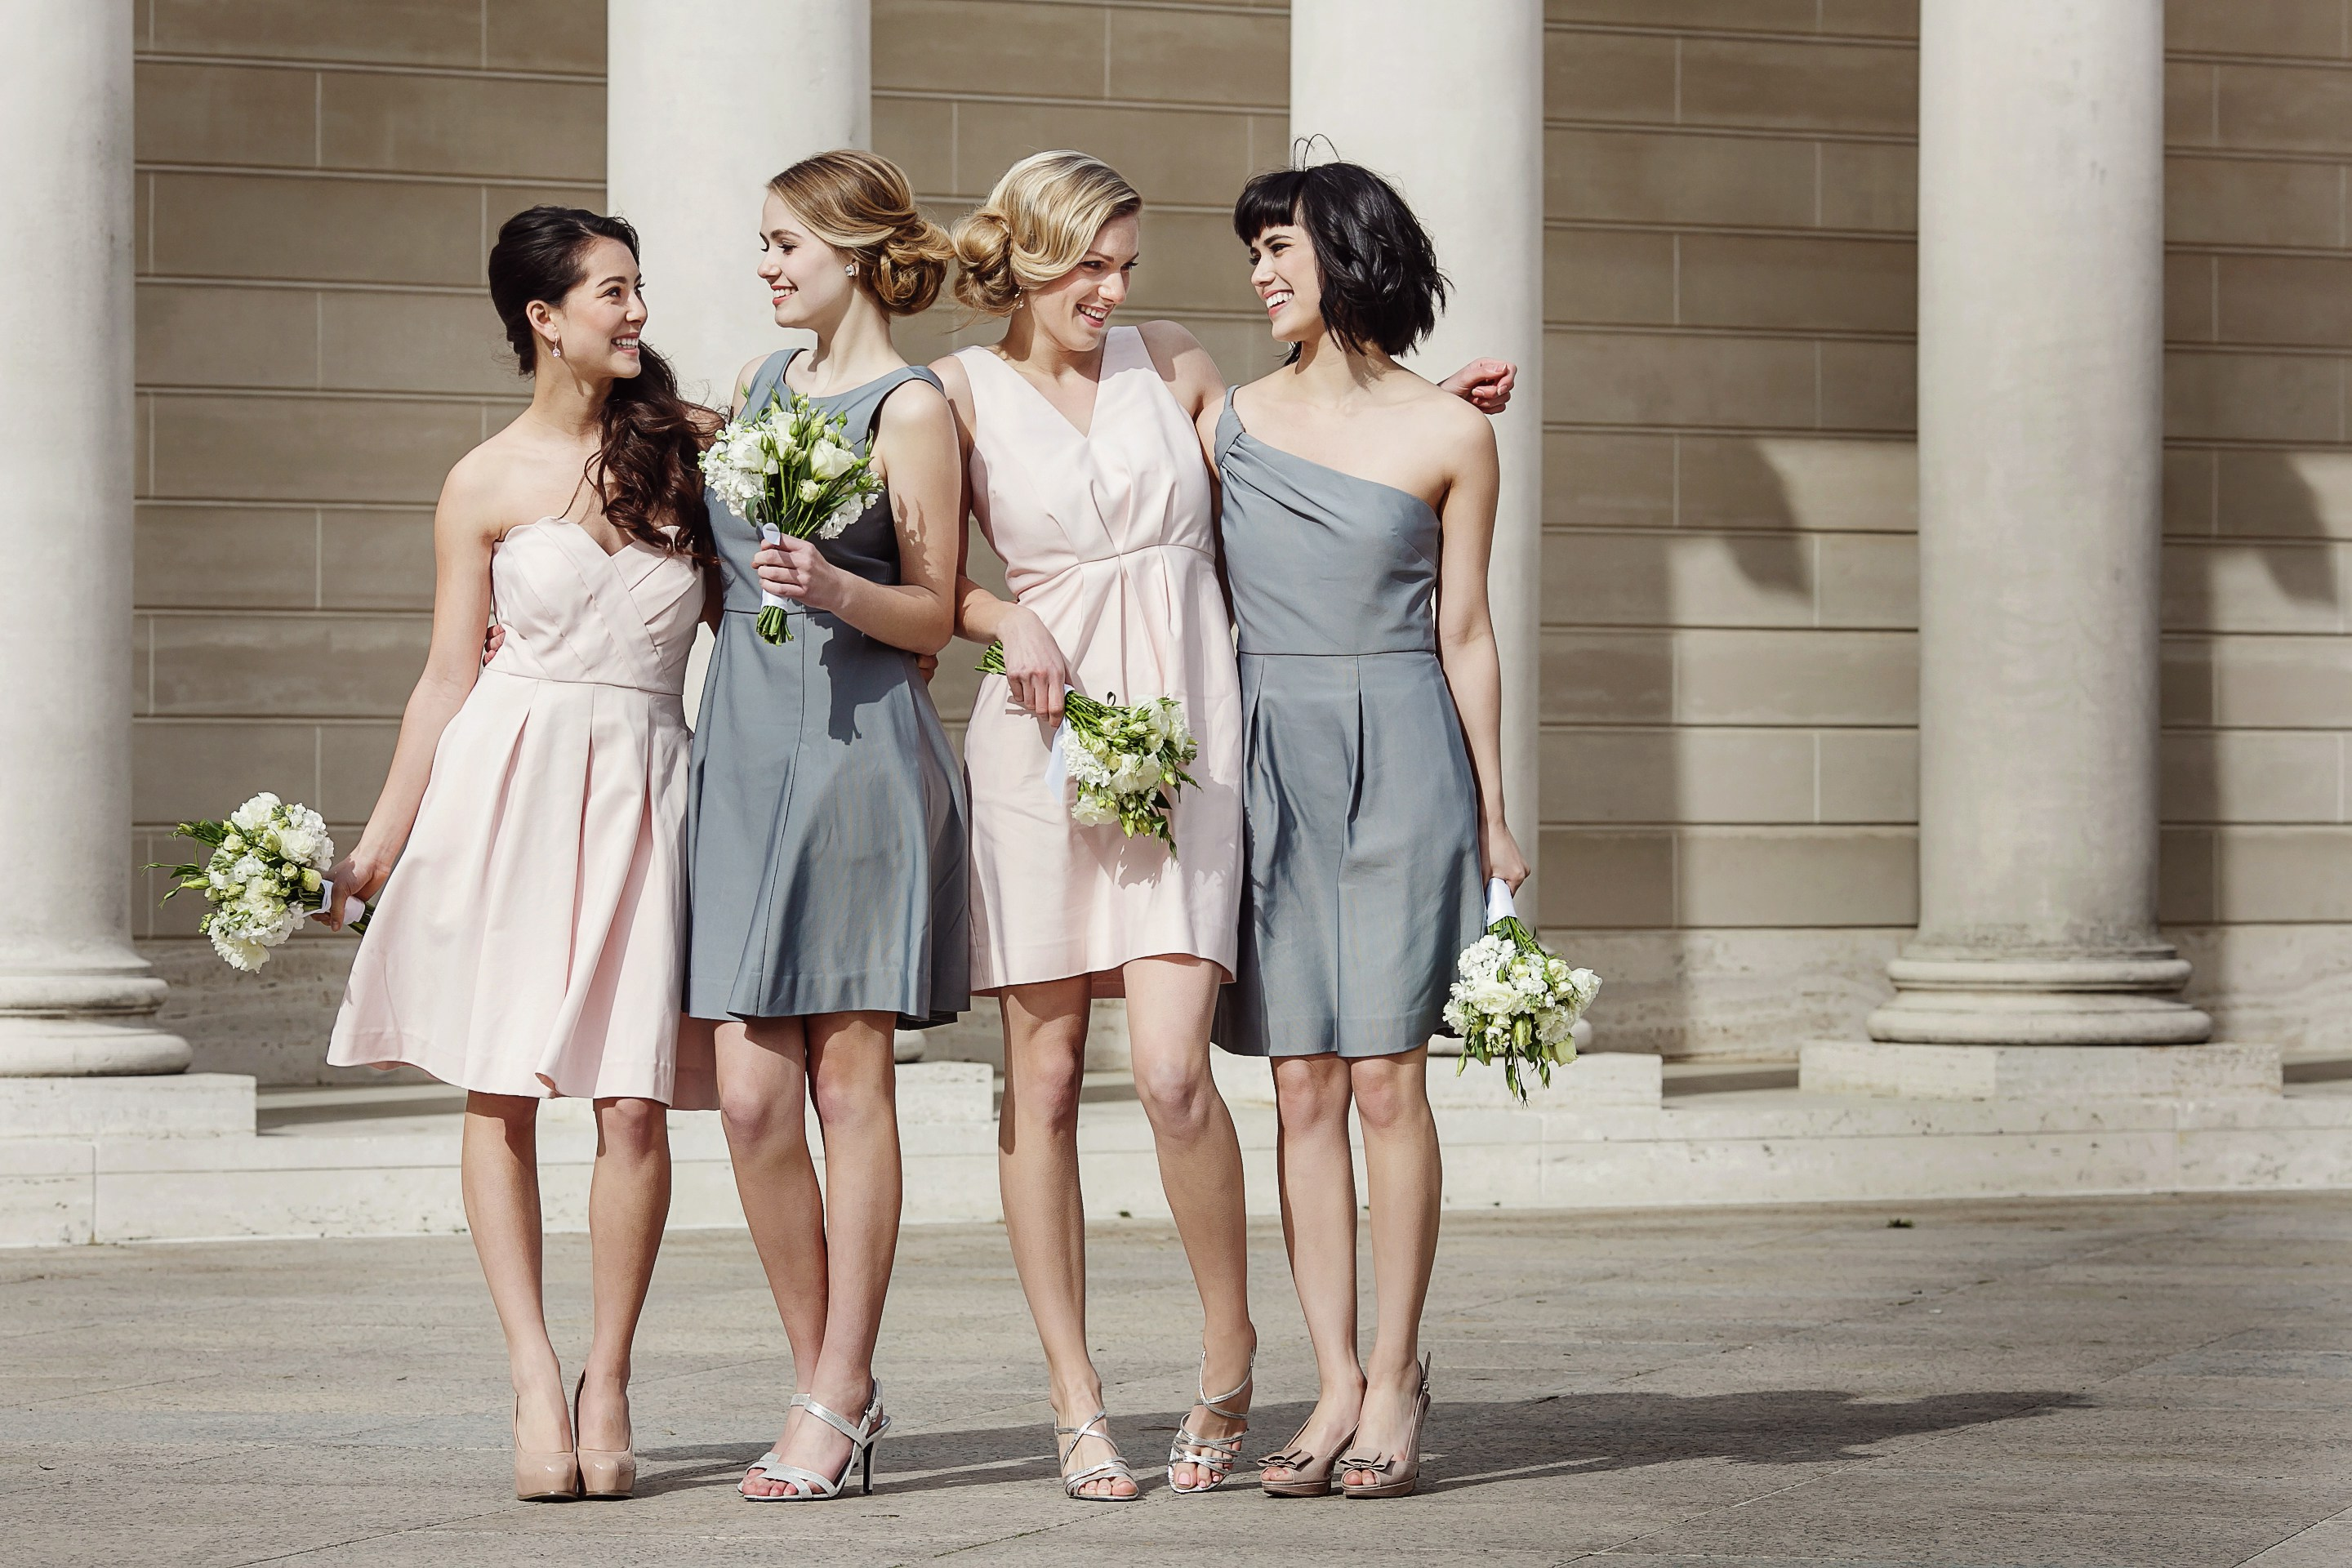 Classic and elegant lace bridesmaid dresses everafterguide top 4 picks for bridesmaid dresses re ombrellifo Images